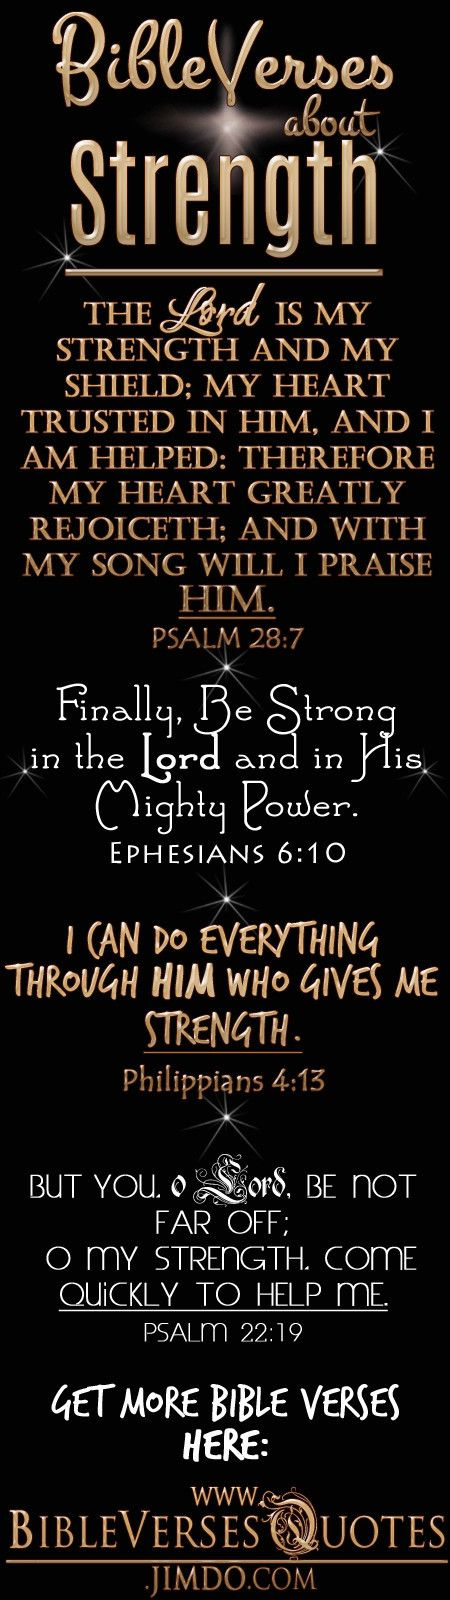 "BIBLE VERSES ABOUT STRENGTH - ""The Lord is my strength and my shield...."""